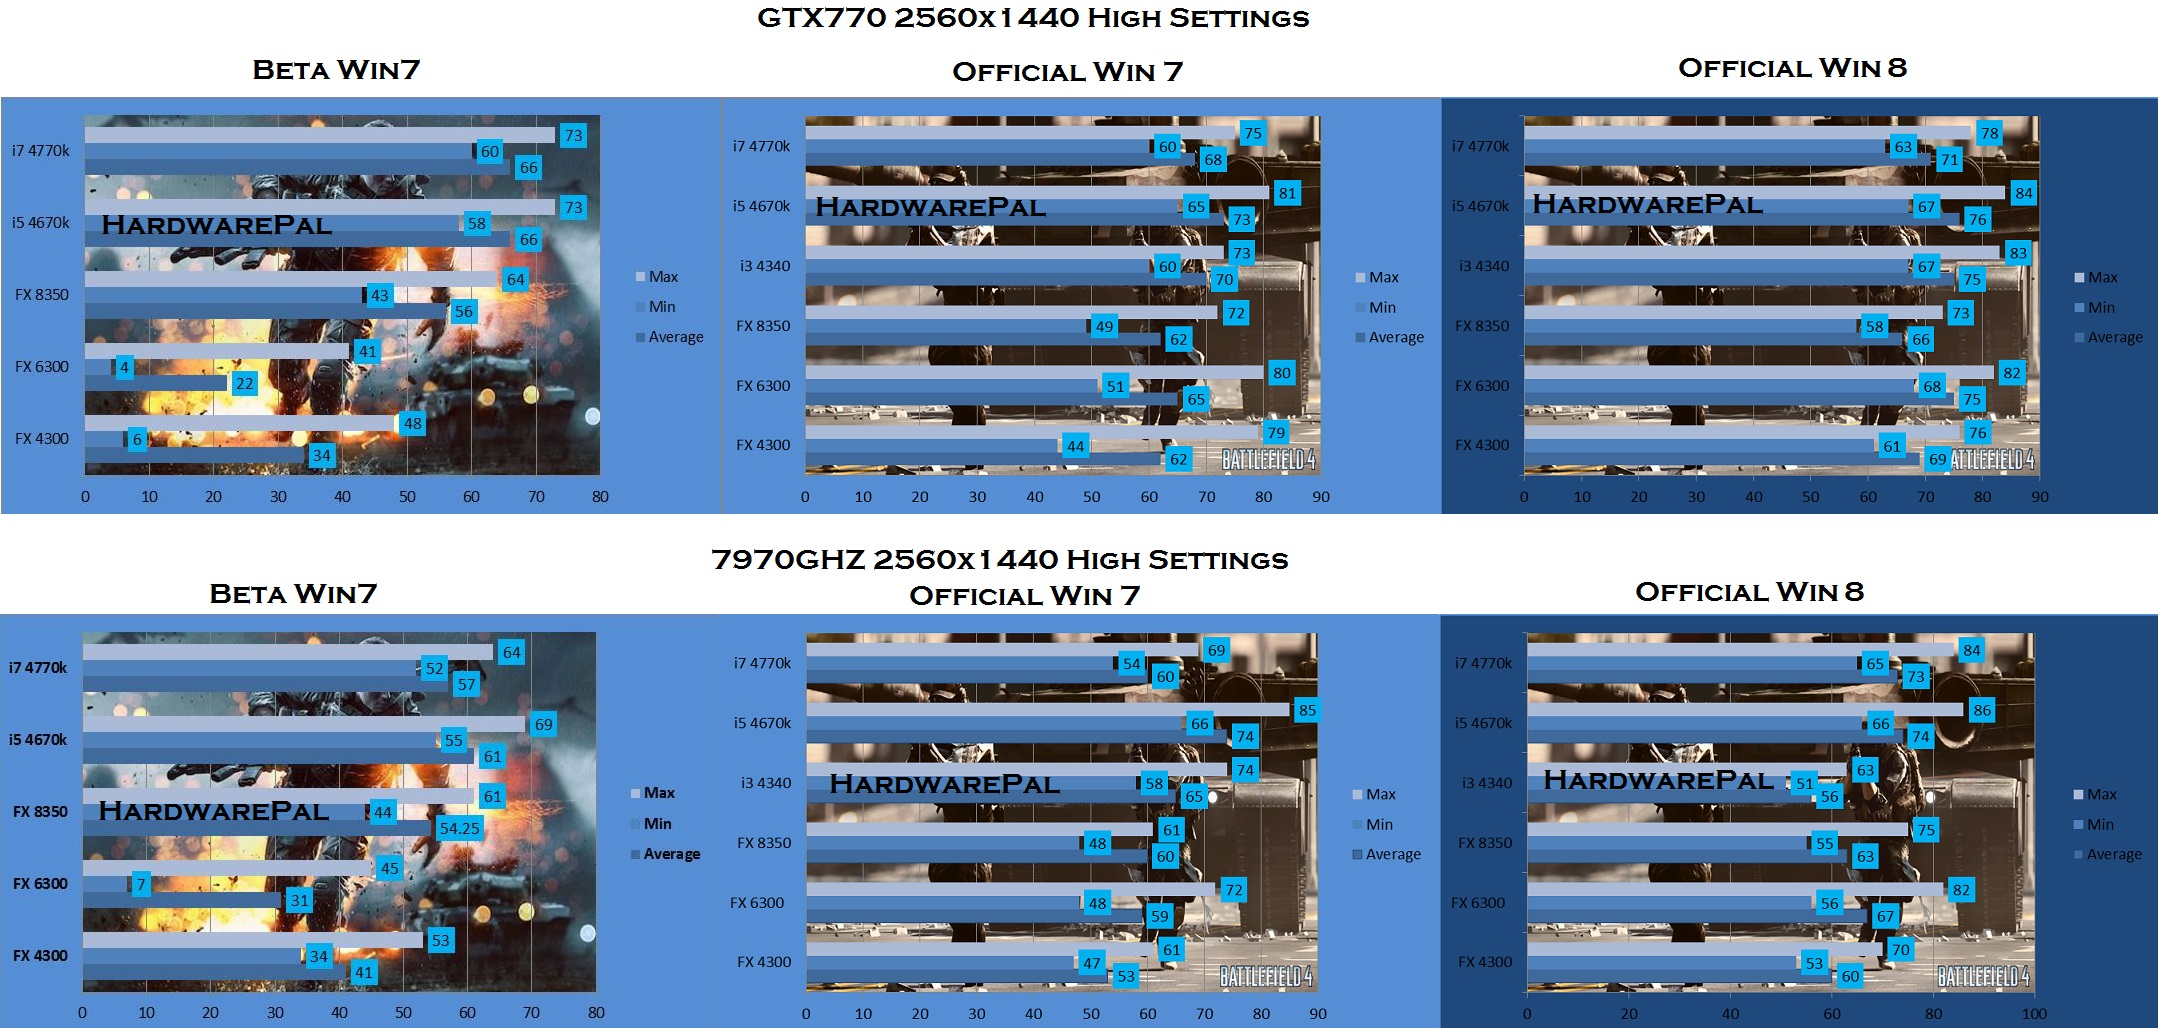 Battlefield 4 Benchmark, 2560 x 1440, High Settings, NVidia 770 GTX 4GB vs 7970